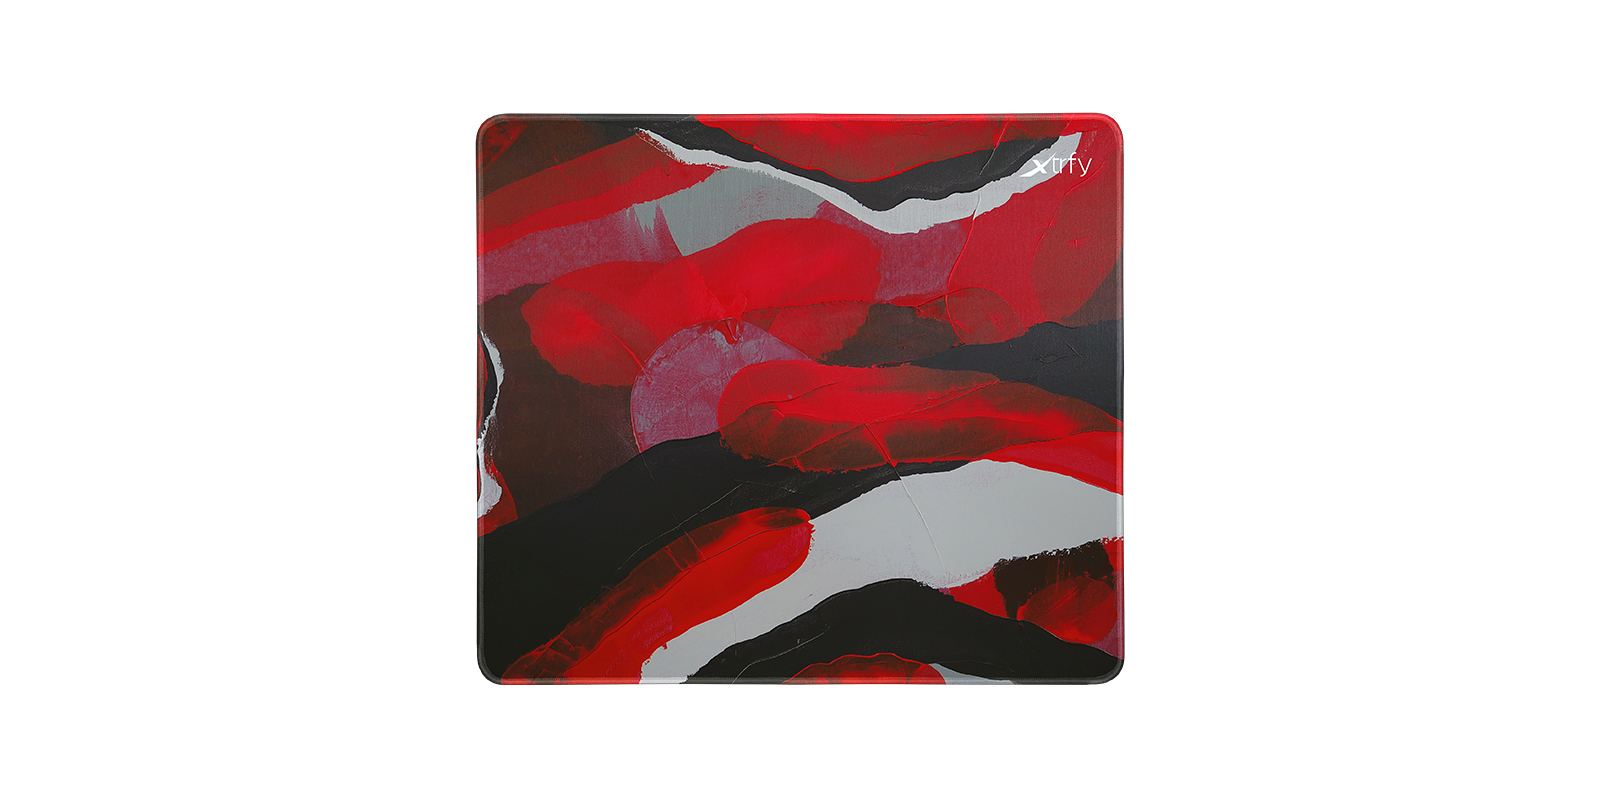 Xtrfy GP4 Gaming mouse pad Black, Grey, Red